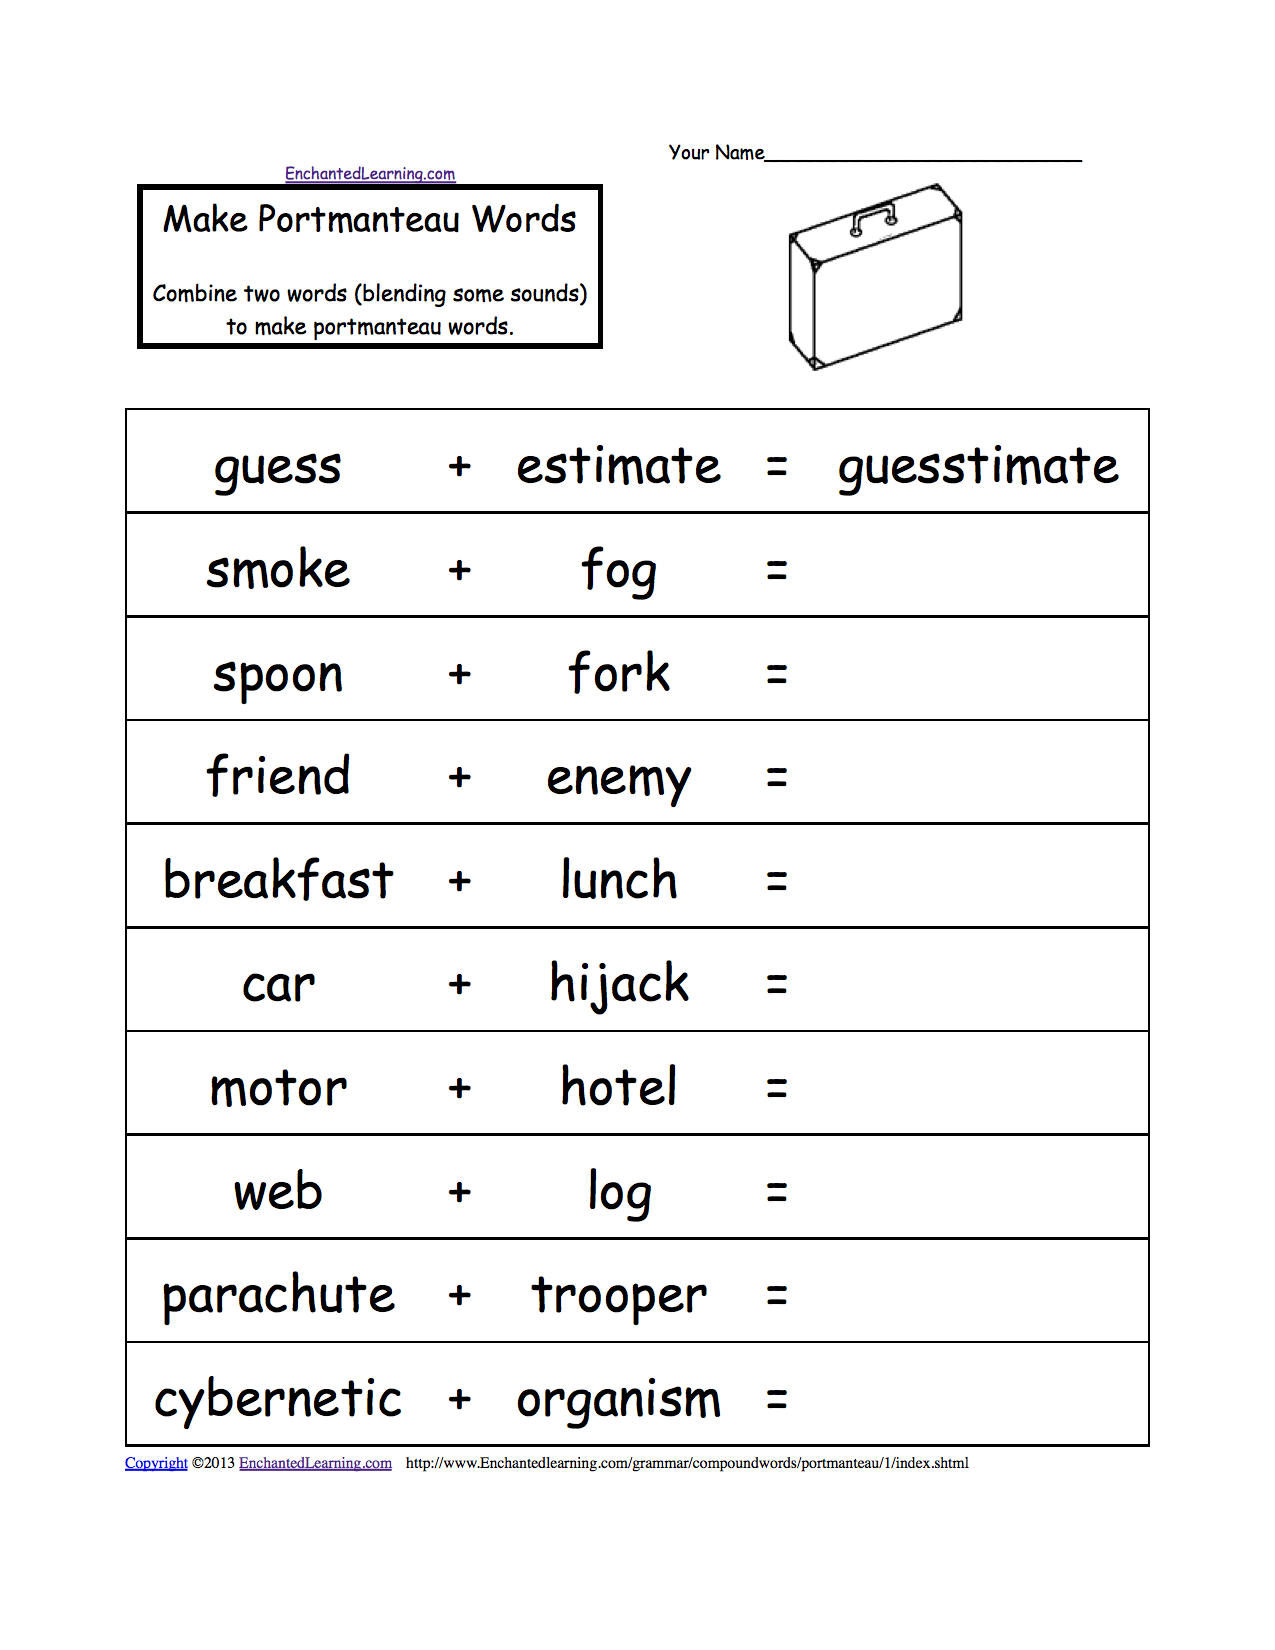 Portmanteau Words, Printable Worksheets. EnchantedLearning.com - photo#45